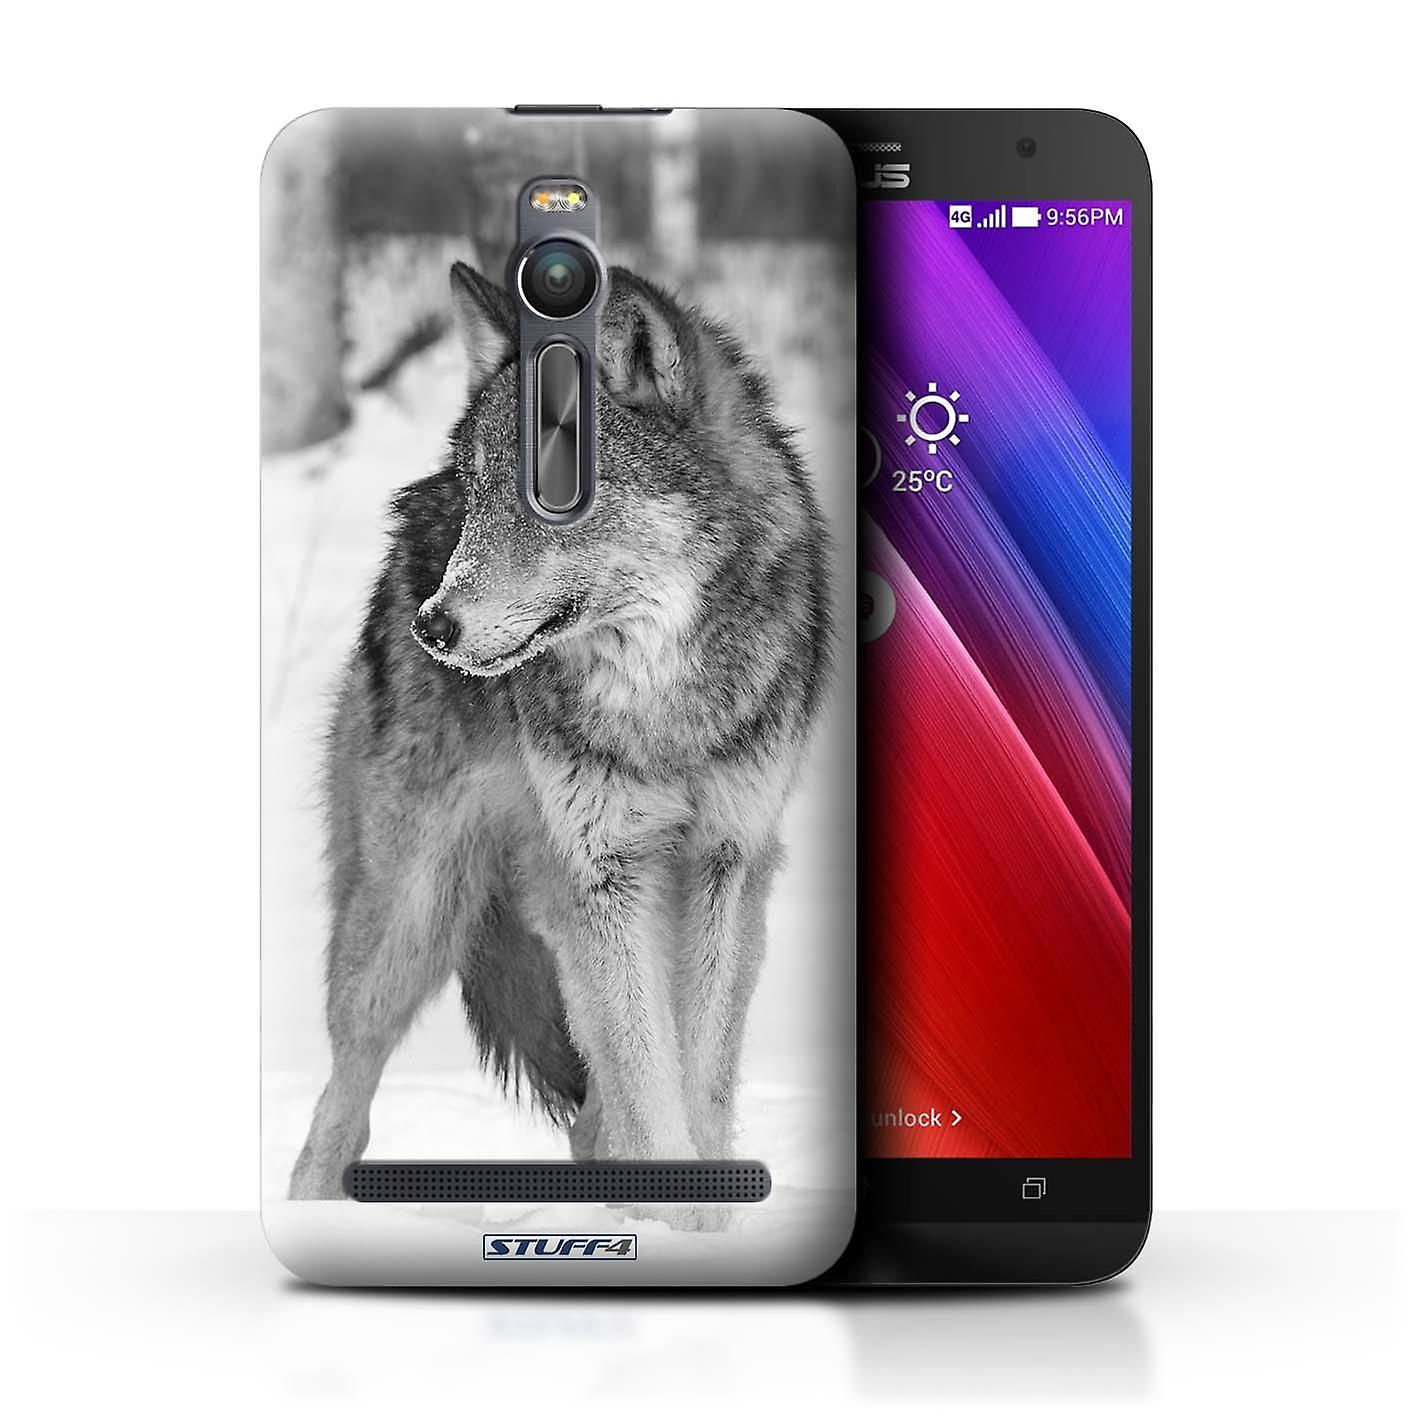 STUFF4 Case/Cover for Asus Zenfone 2 ZE551ML/Wolf/Mono Zoo Animals